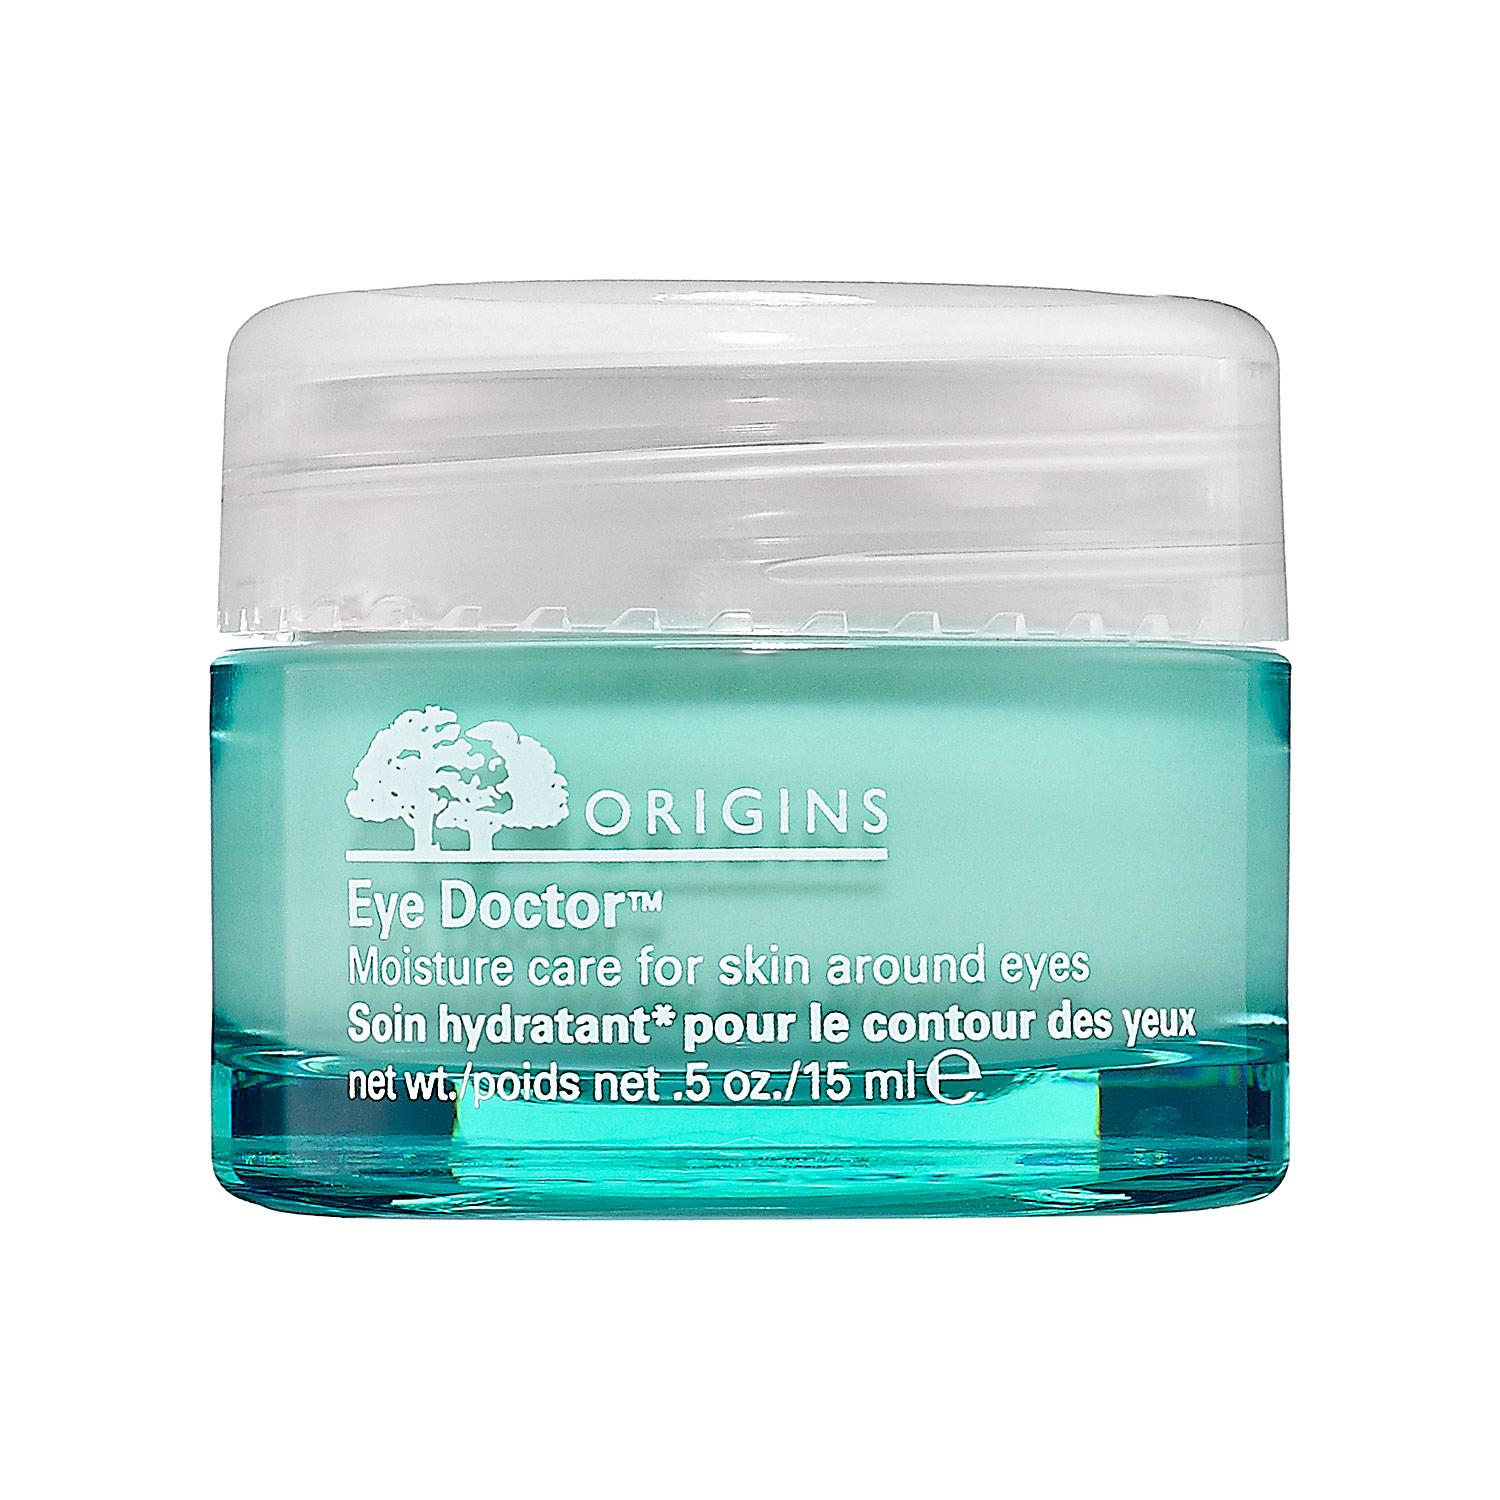 Eye Doctor™ Moisture Care For Skin Around Eyes